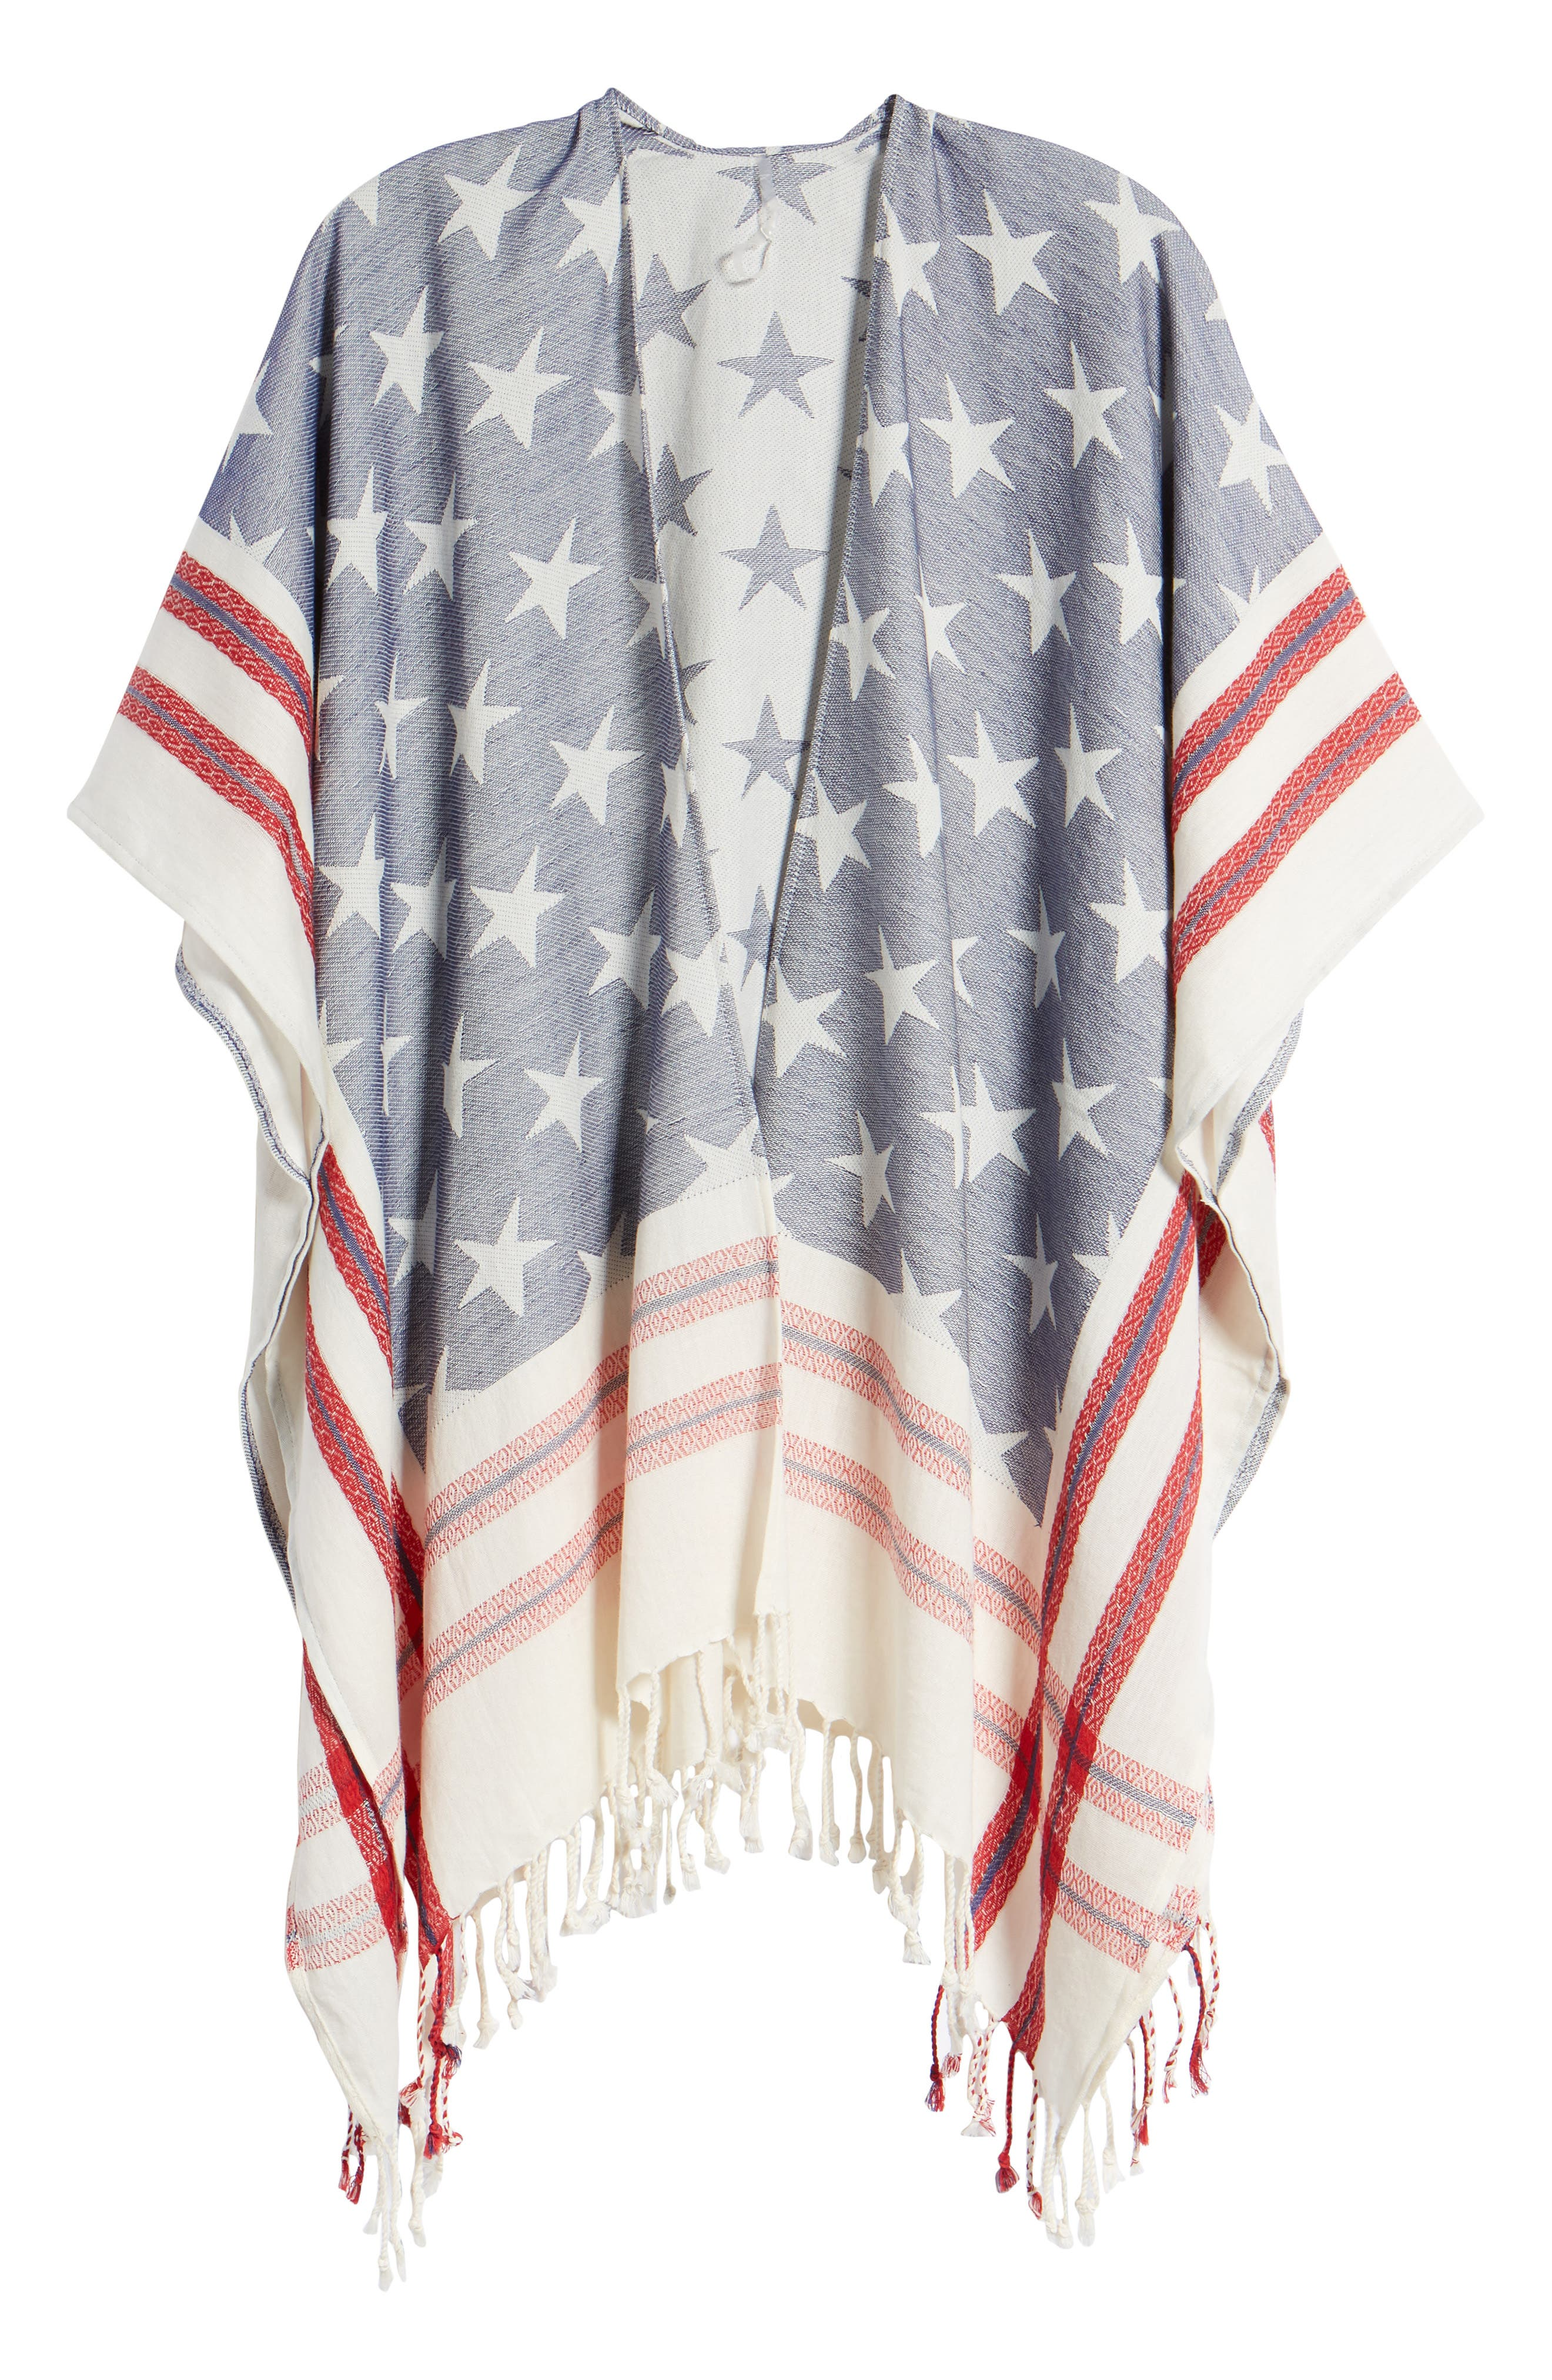 American Boho Jacquard Topper,                             Alternate thumbnail 6, color,                             400